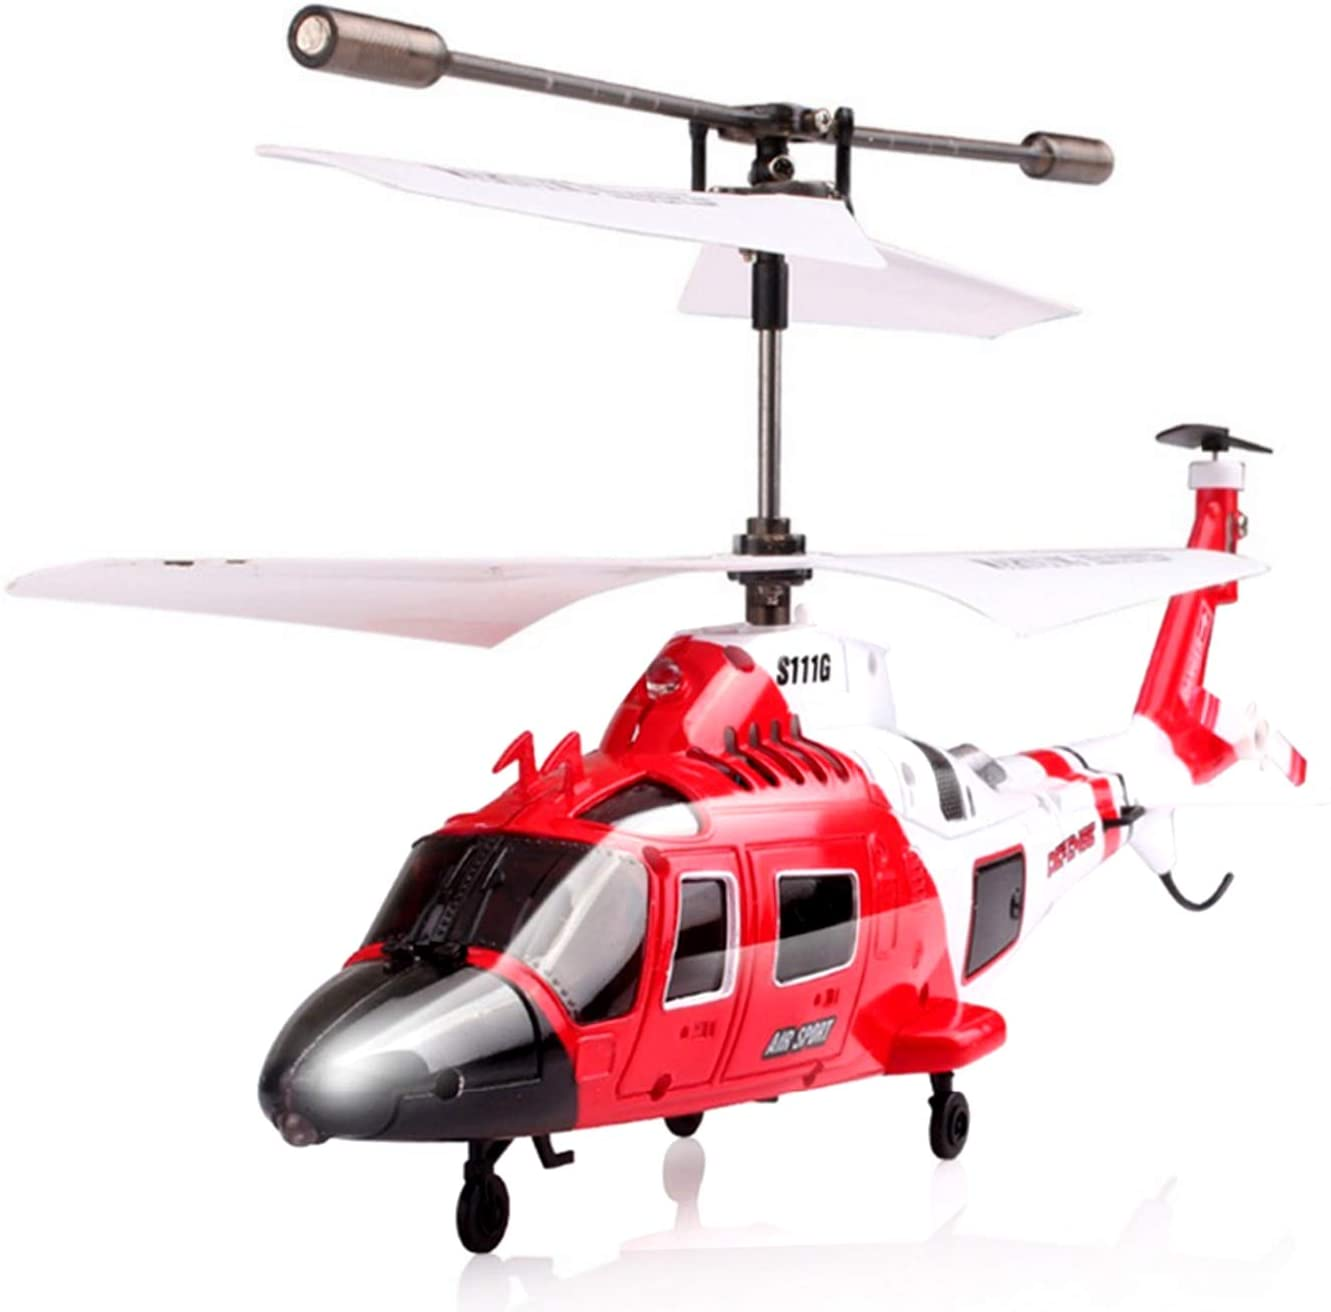 6. POCO DIVO Coast Guard Rescue Helicopter RC Flight Infrared 3CH Gyro Marine Aircraft Model S111G